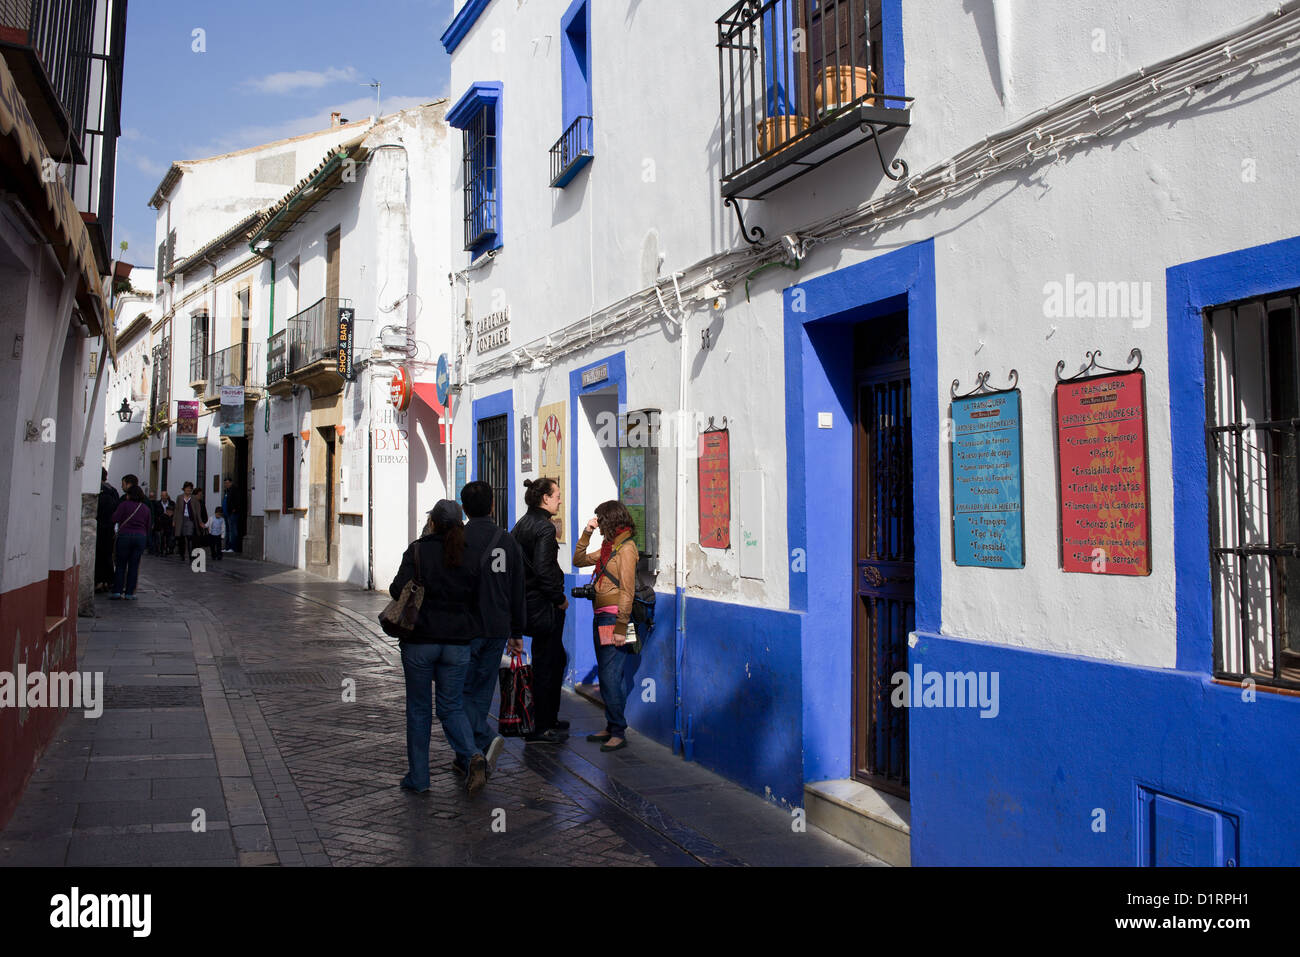 Cardenal Gonzales street in the Old Town of Cordoba city in Spain, Andalusia region. - Stock Image